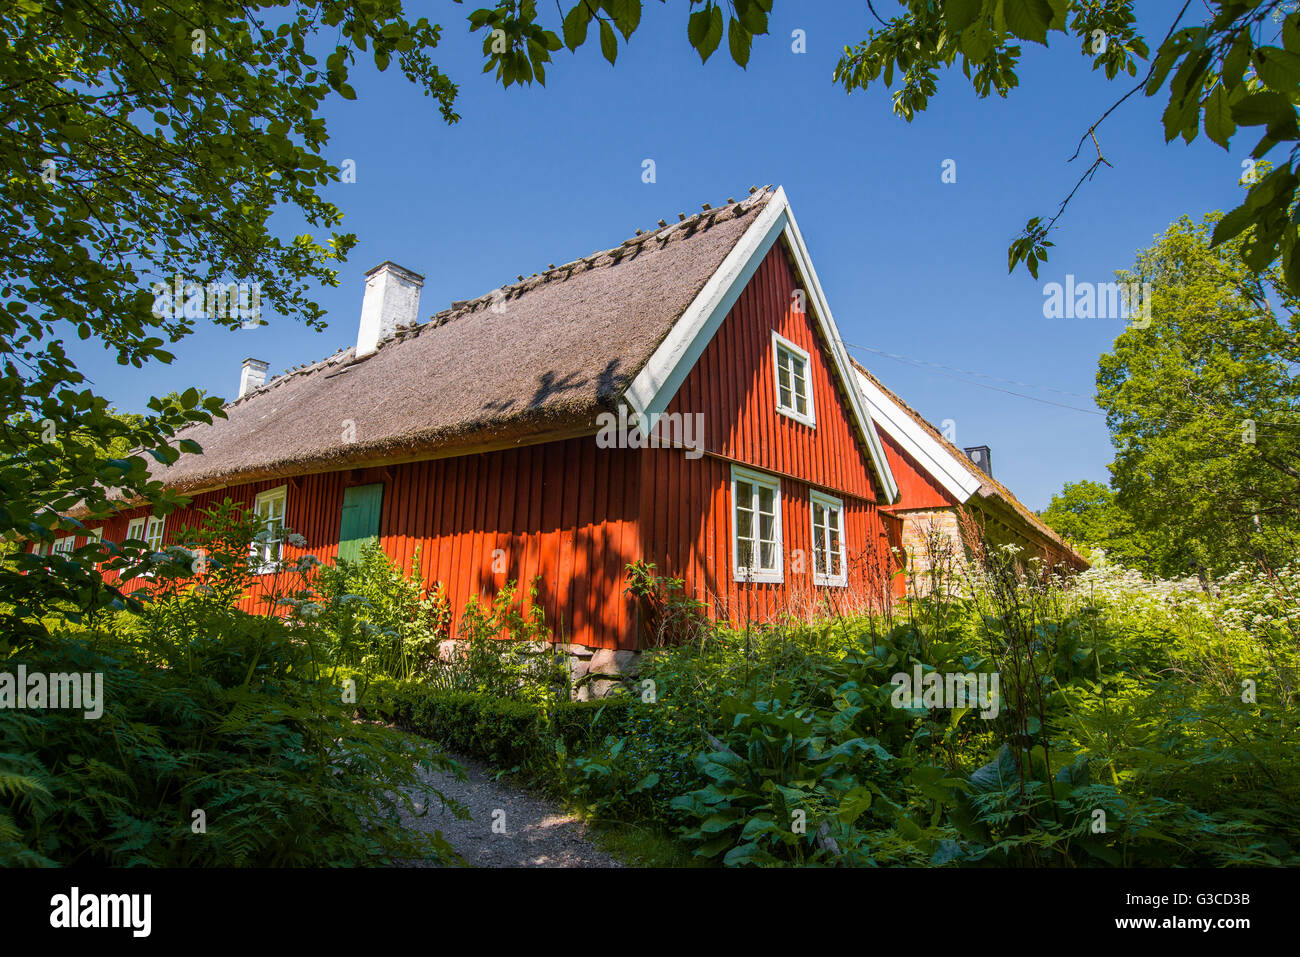 A traditional red Swedish house stands in Skansen, Stockholm. - Stock Image